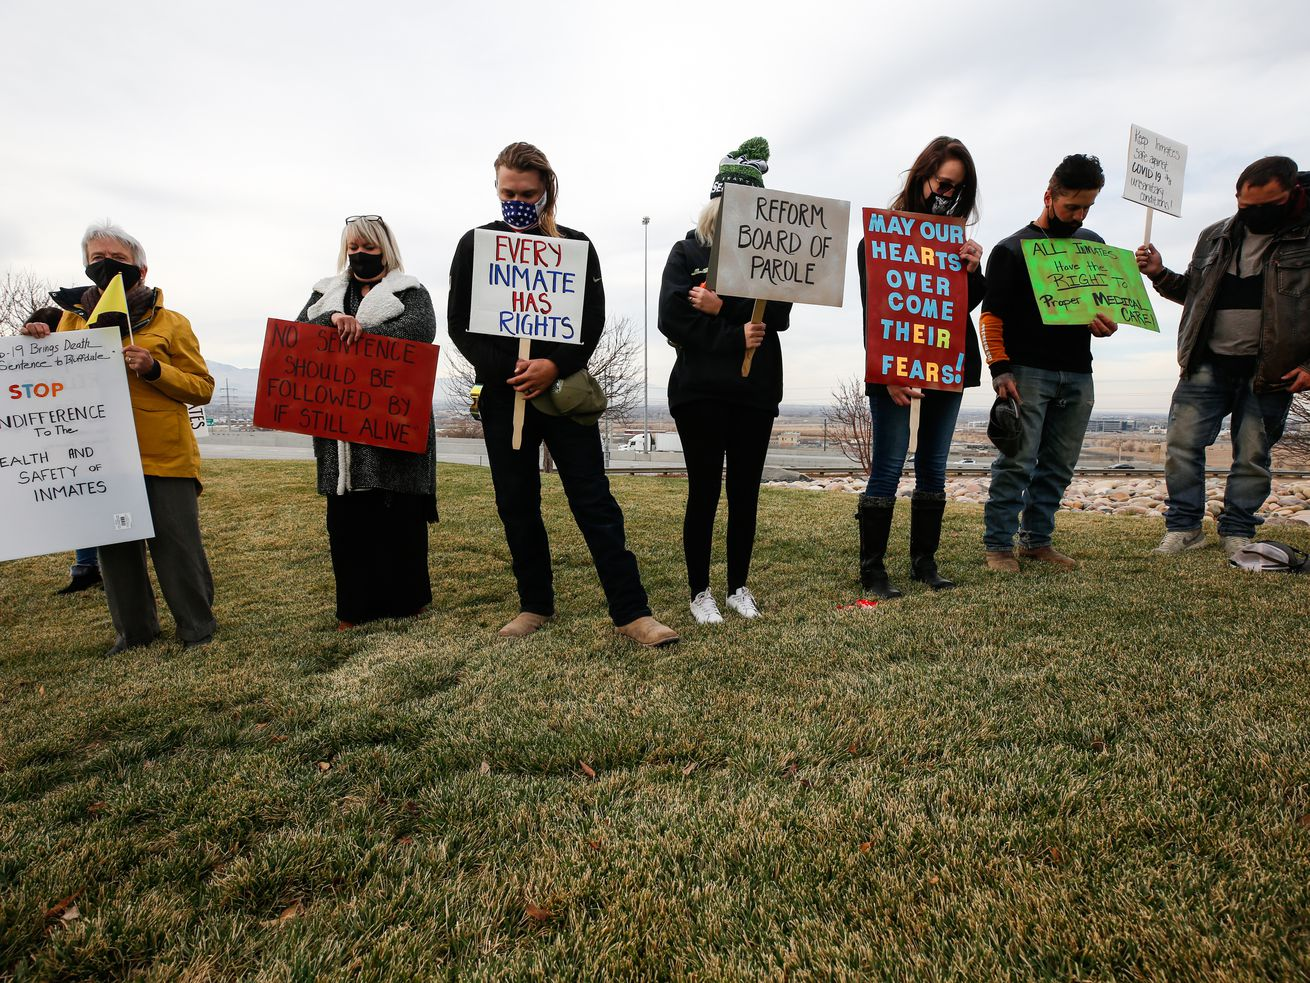 Demonstrators gather for an inmate rights rally outside of the Utah Department of Corrections in Draper on Sunday, Nov. 22, 2020. During the rally, participants planted green flags in the lawn for all the incarcerated individuals that have tested positive with COVID-19.